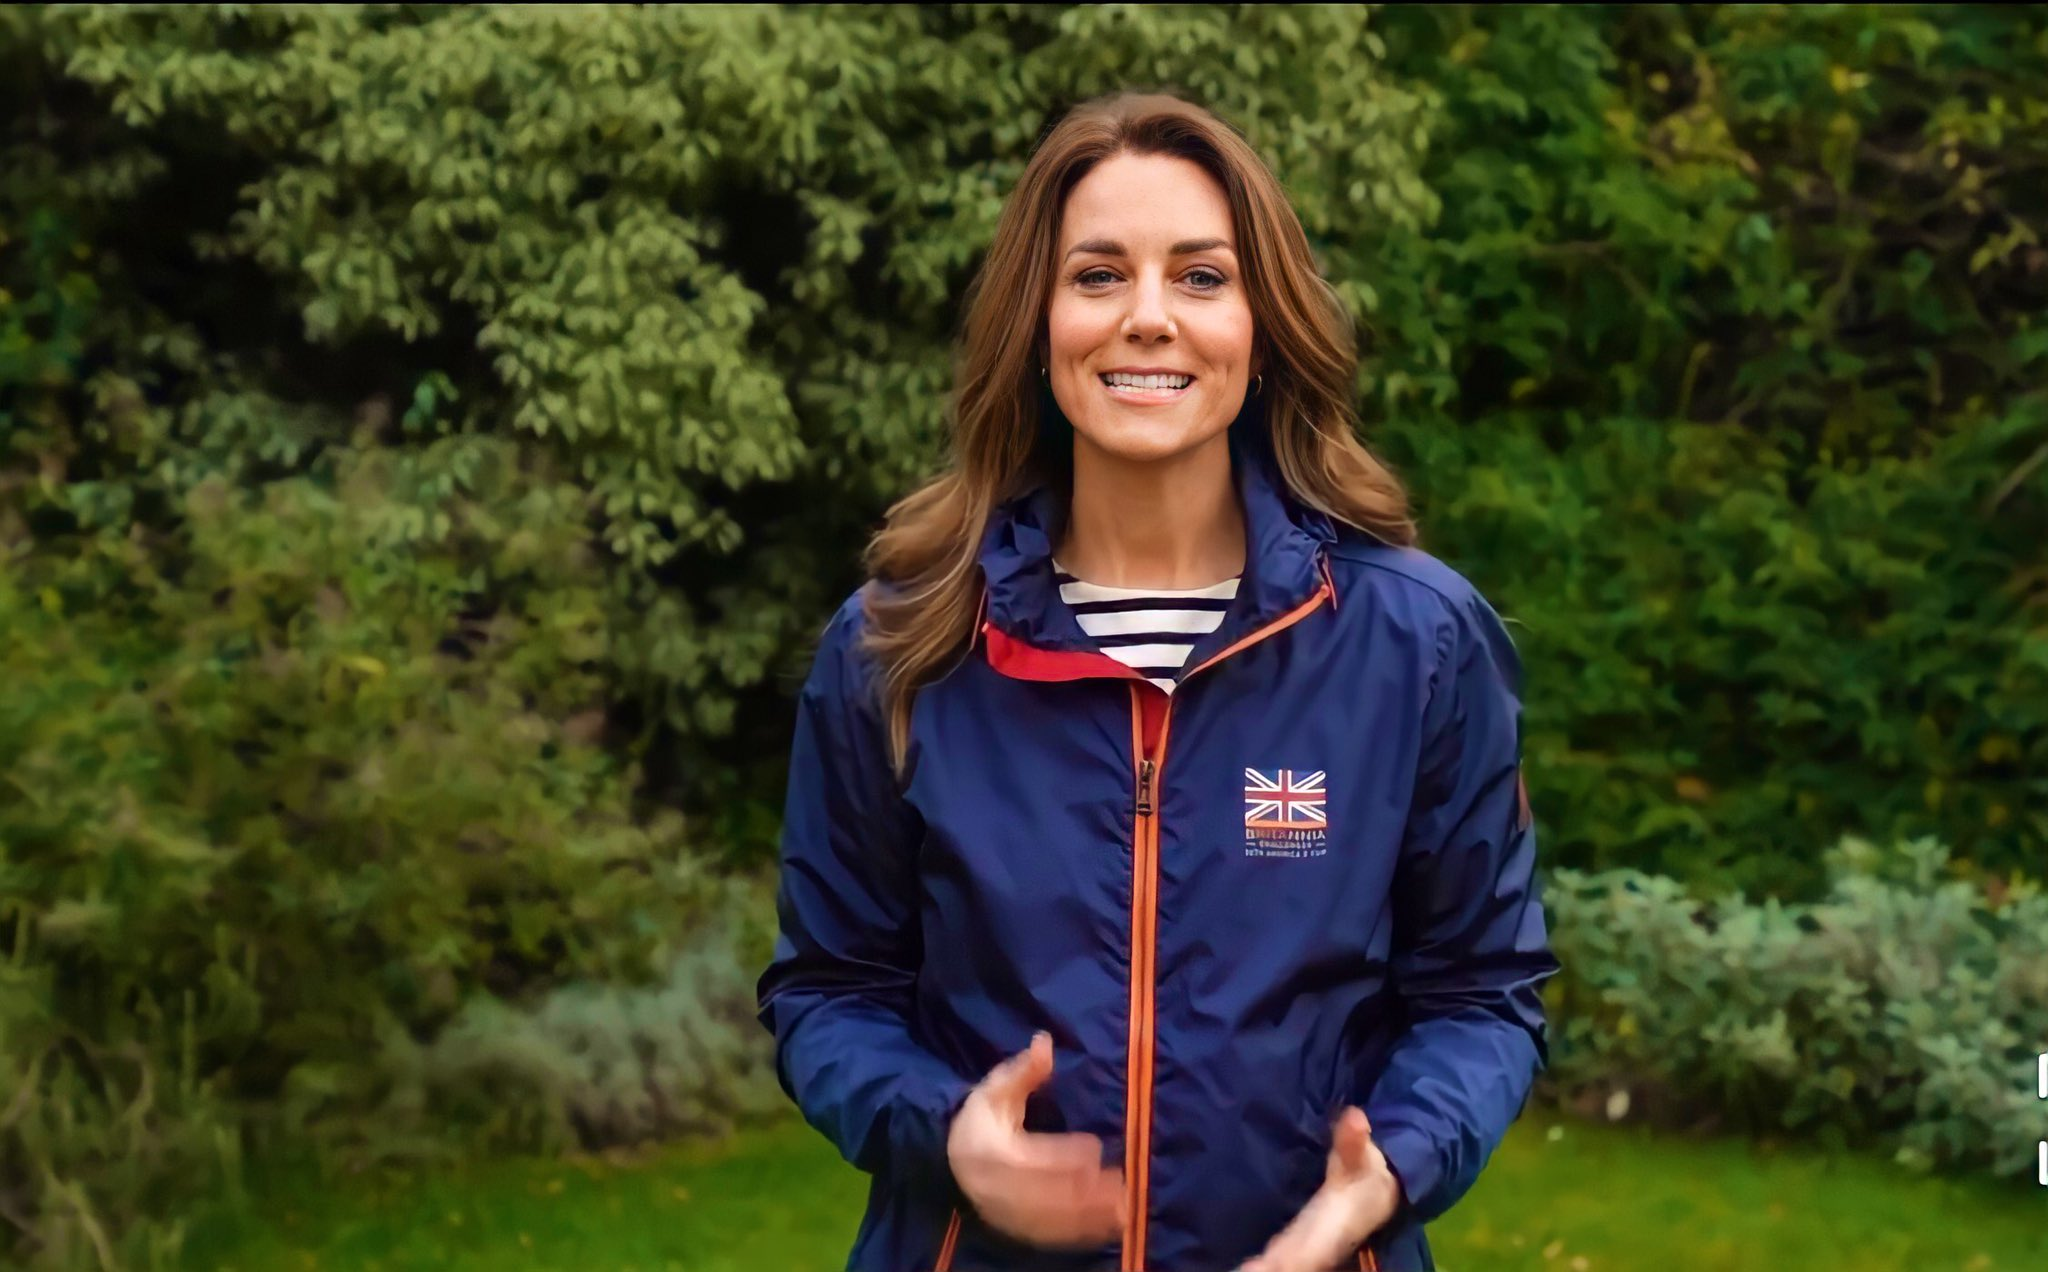 The Duchess of Cambridge sent the besst wishes to America's Cup team